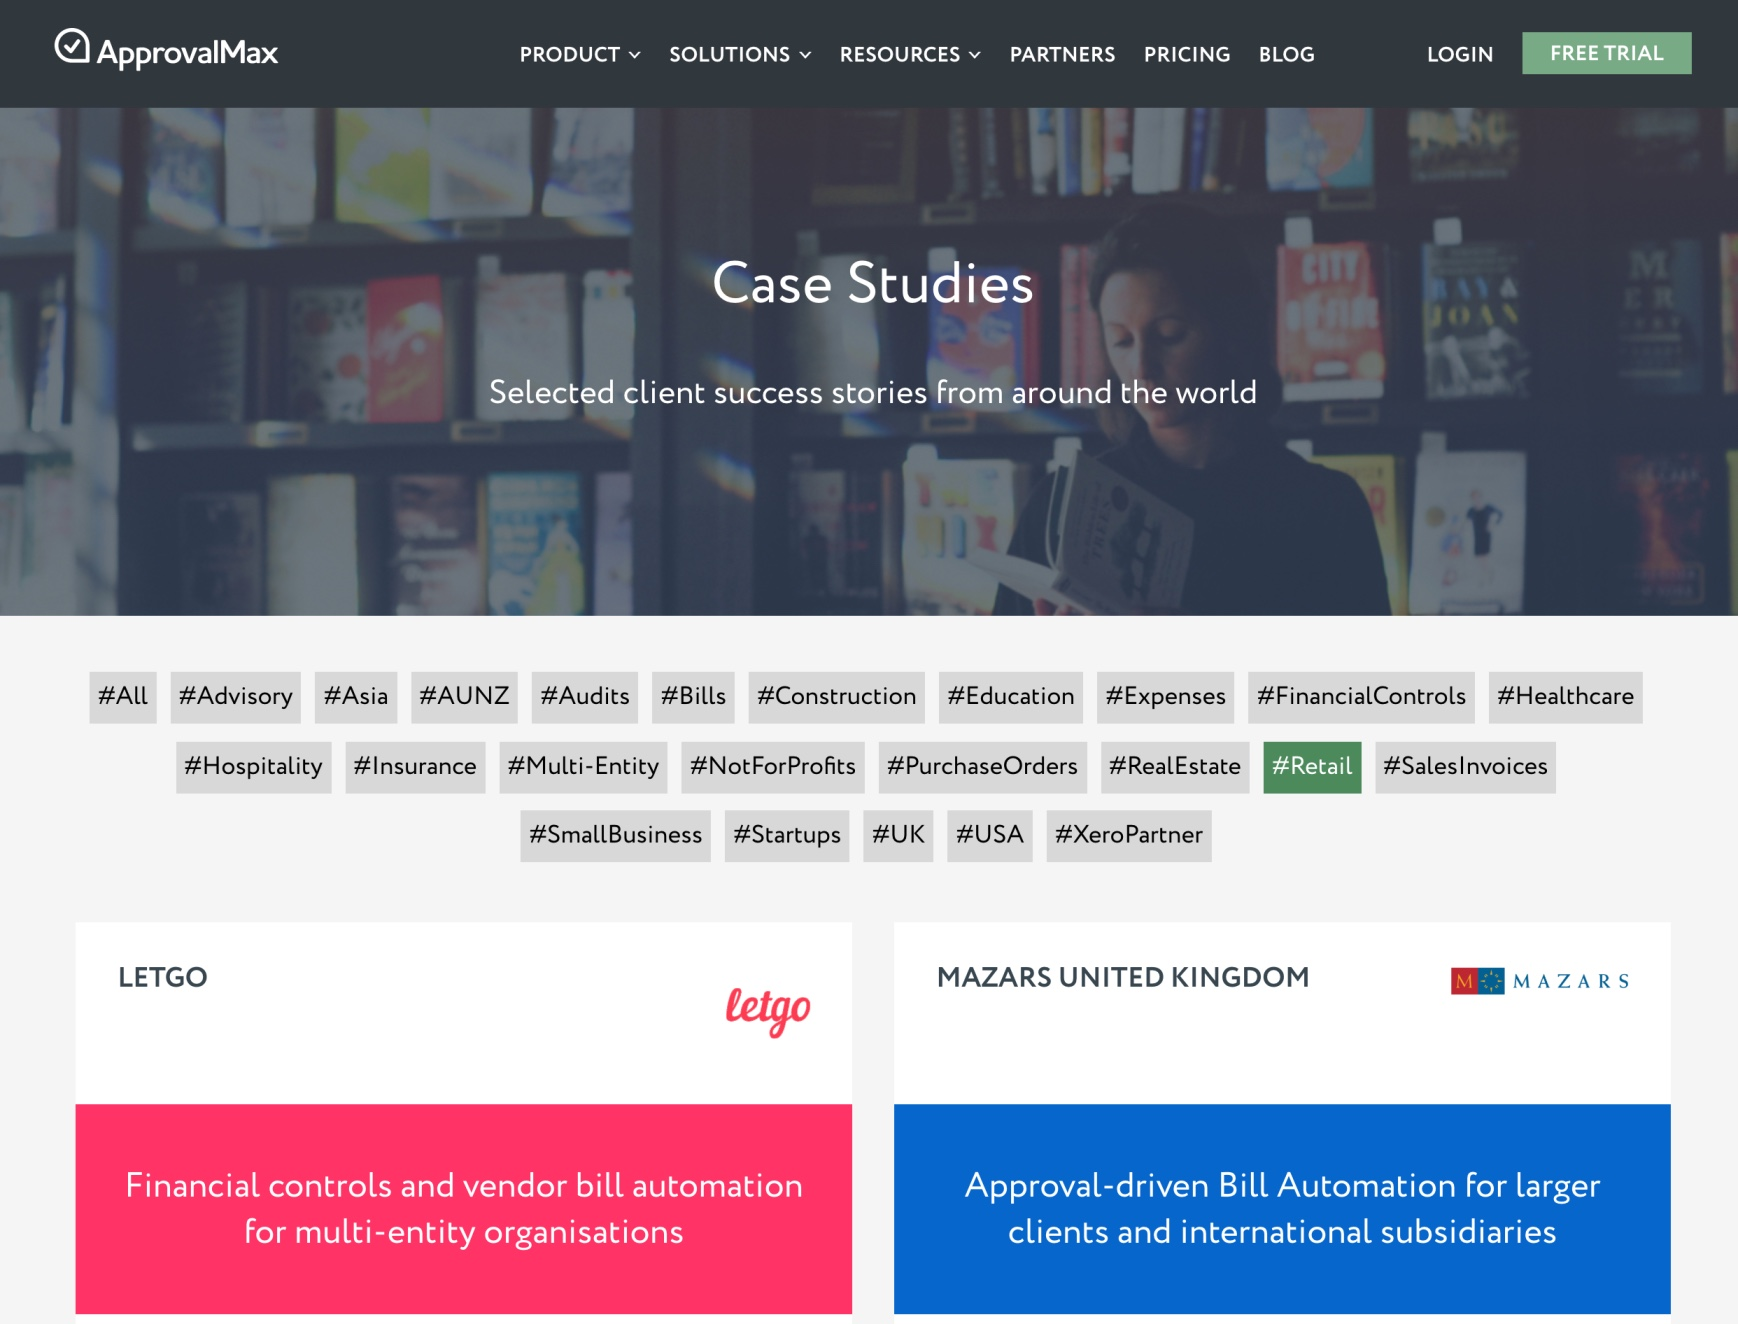 ApprovalMax Case Study Library